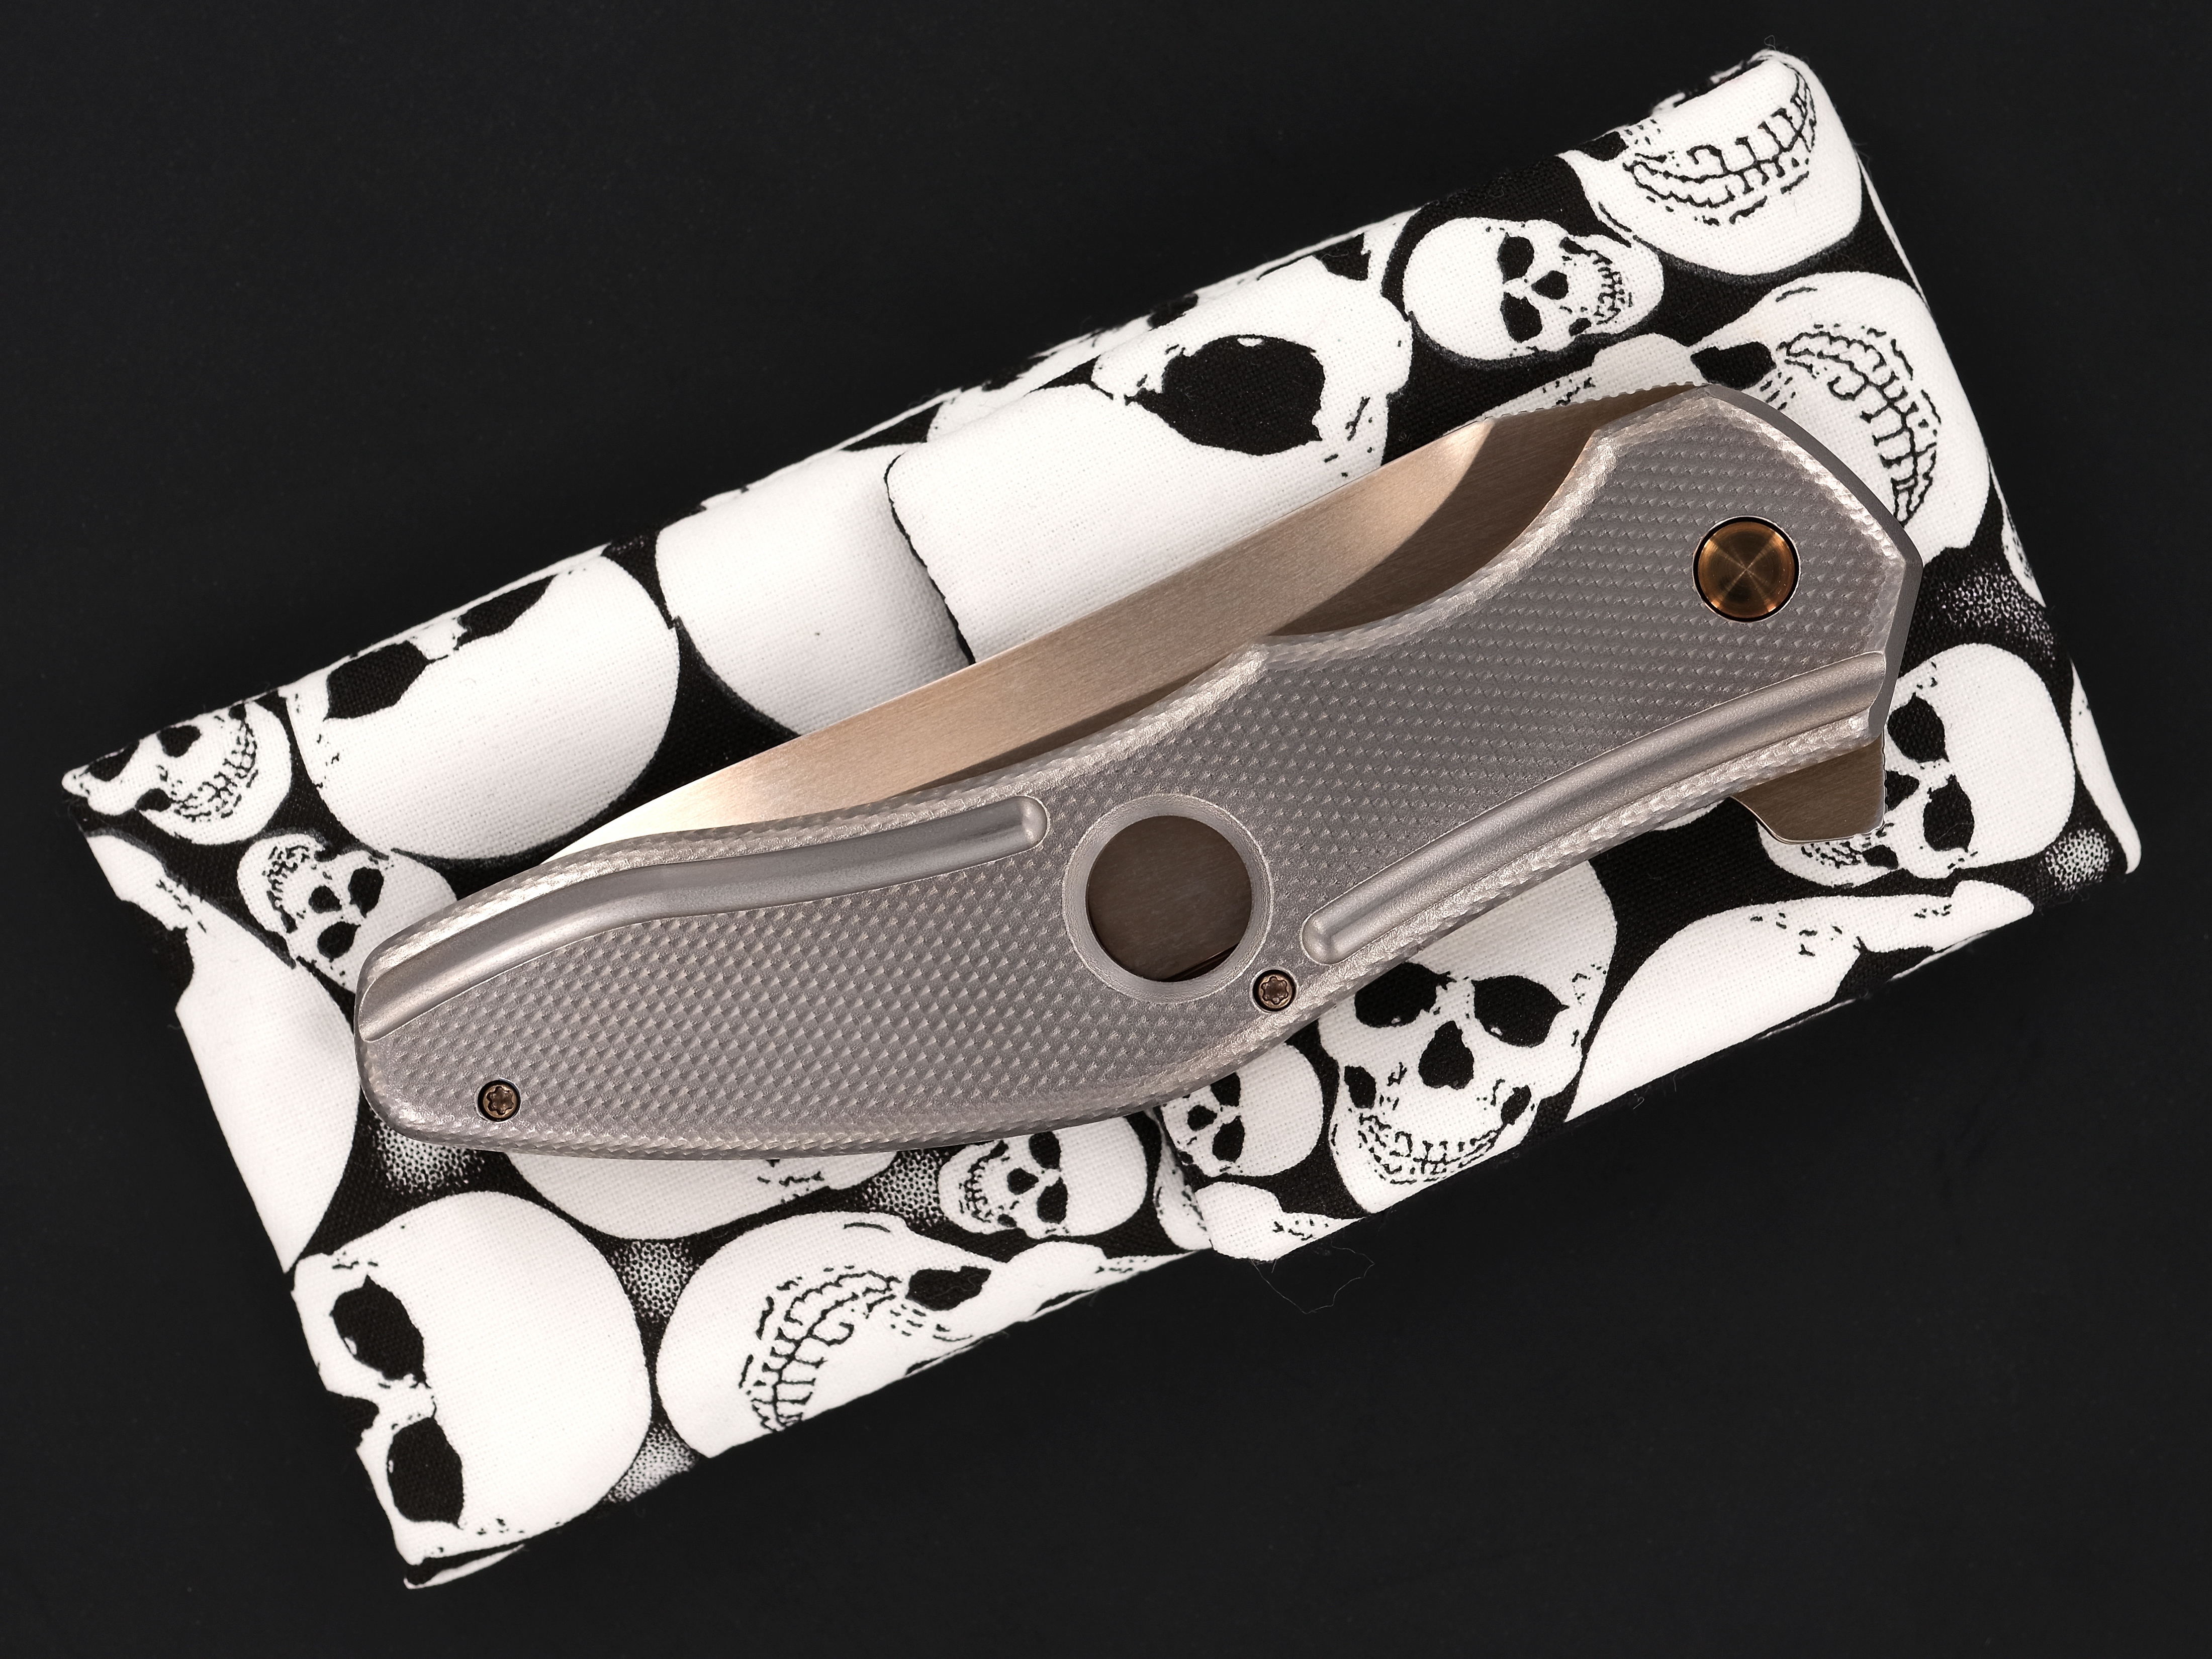 Gerry McGinnis Custom Golden-Bladed Piston Flipper